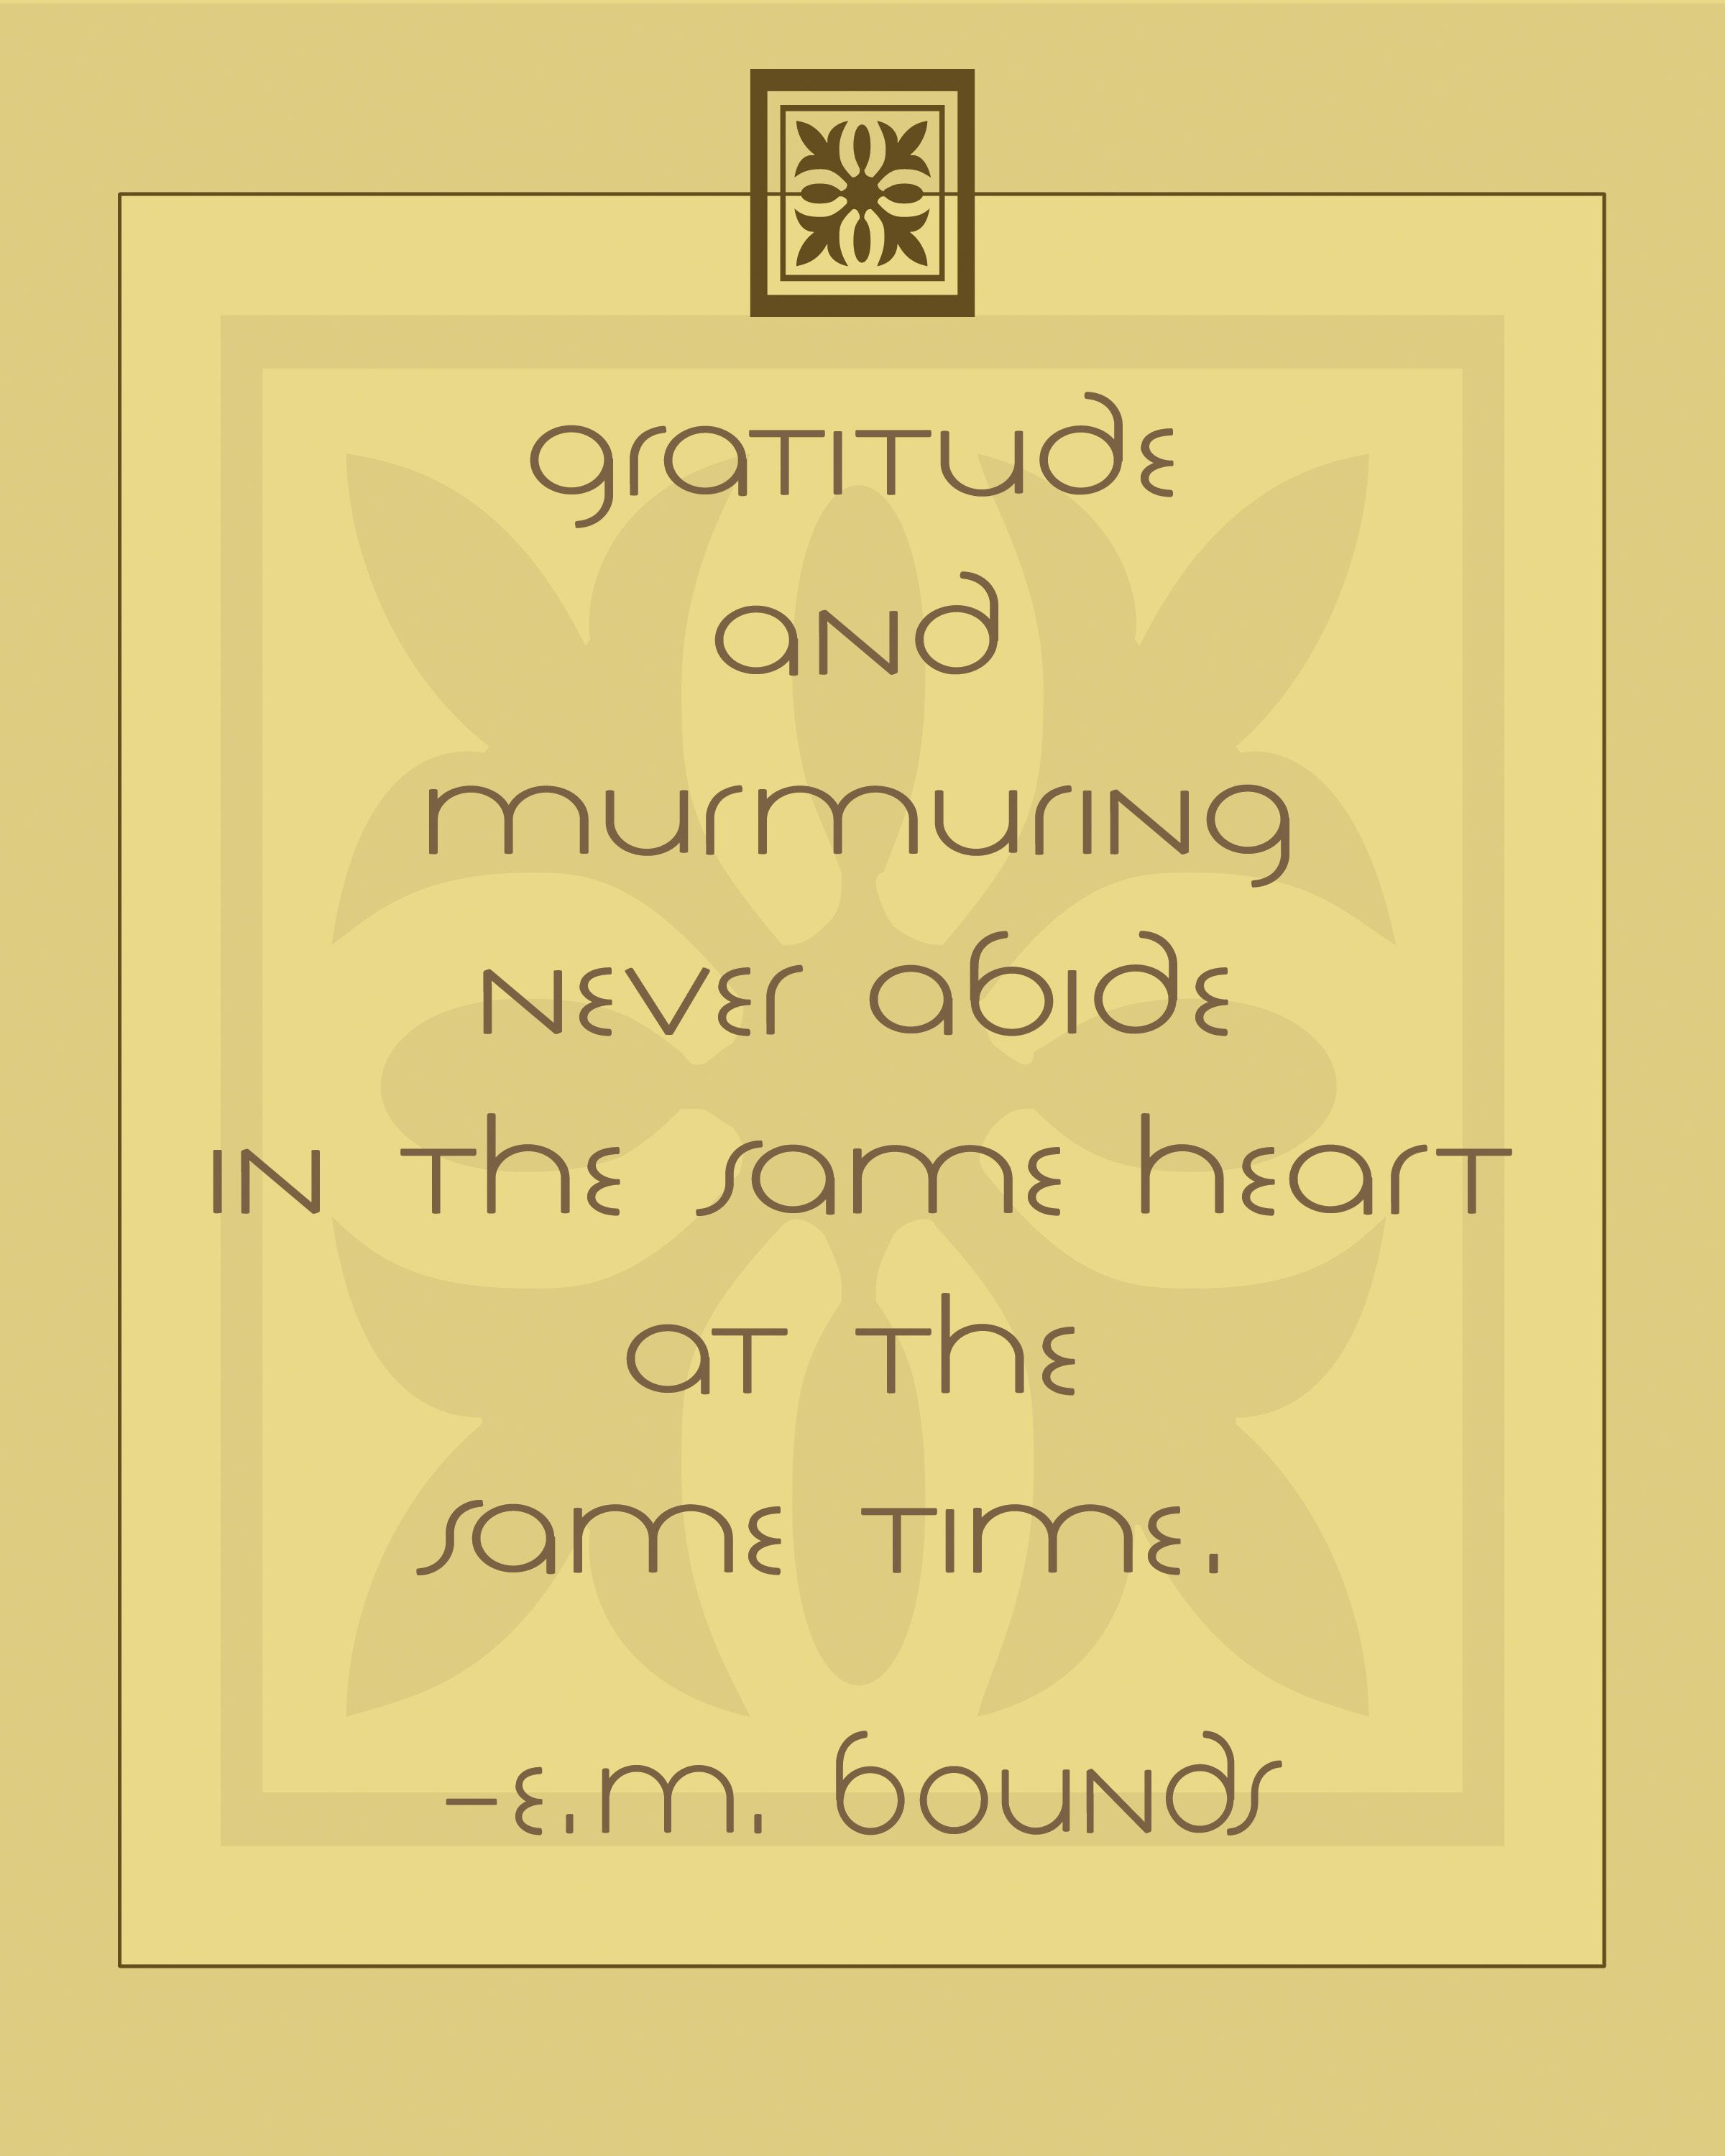 Deep Thanksgiving Quotes: Gratitude And Murmuring + Free Printables